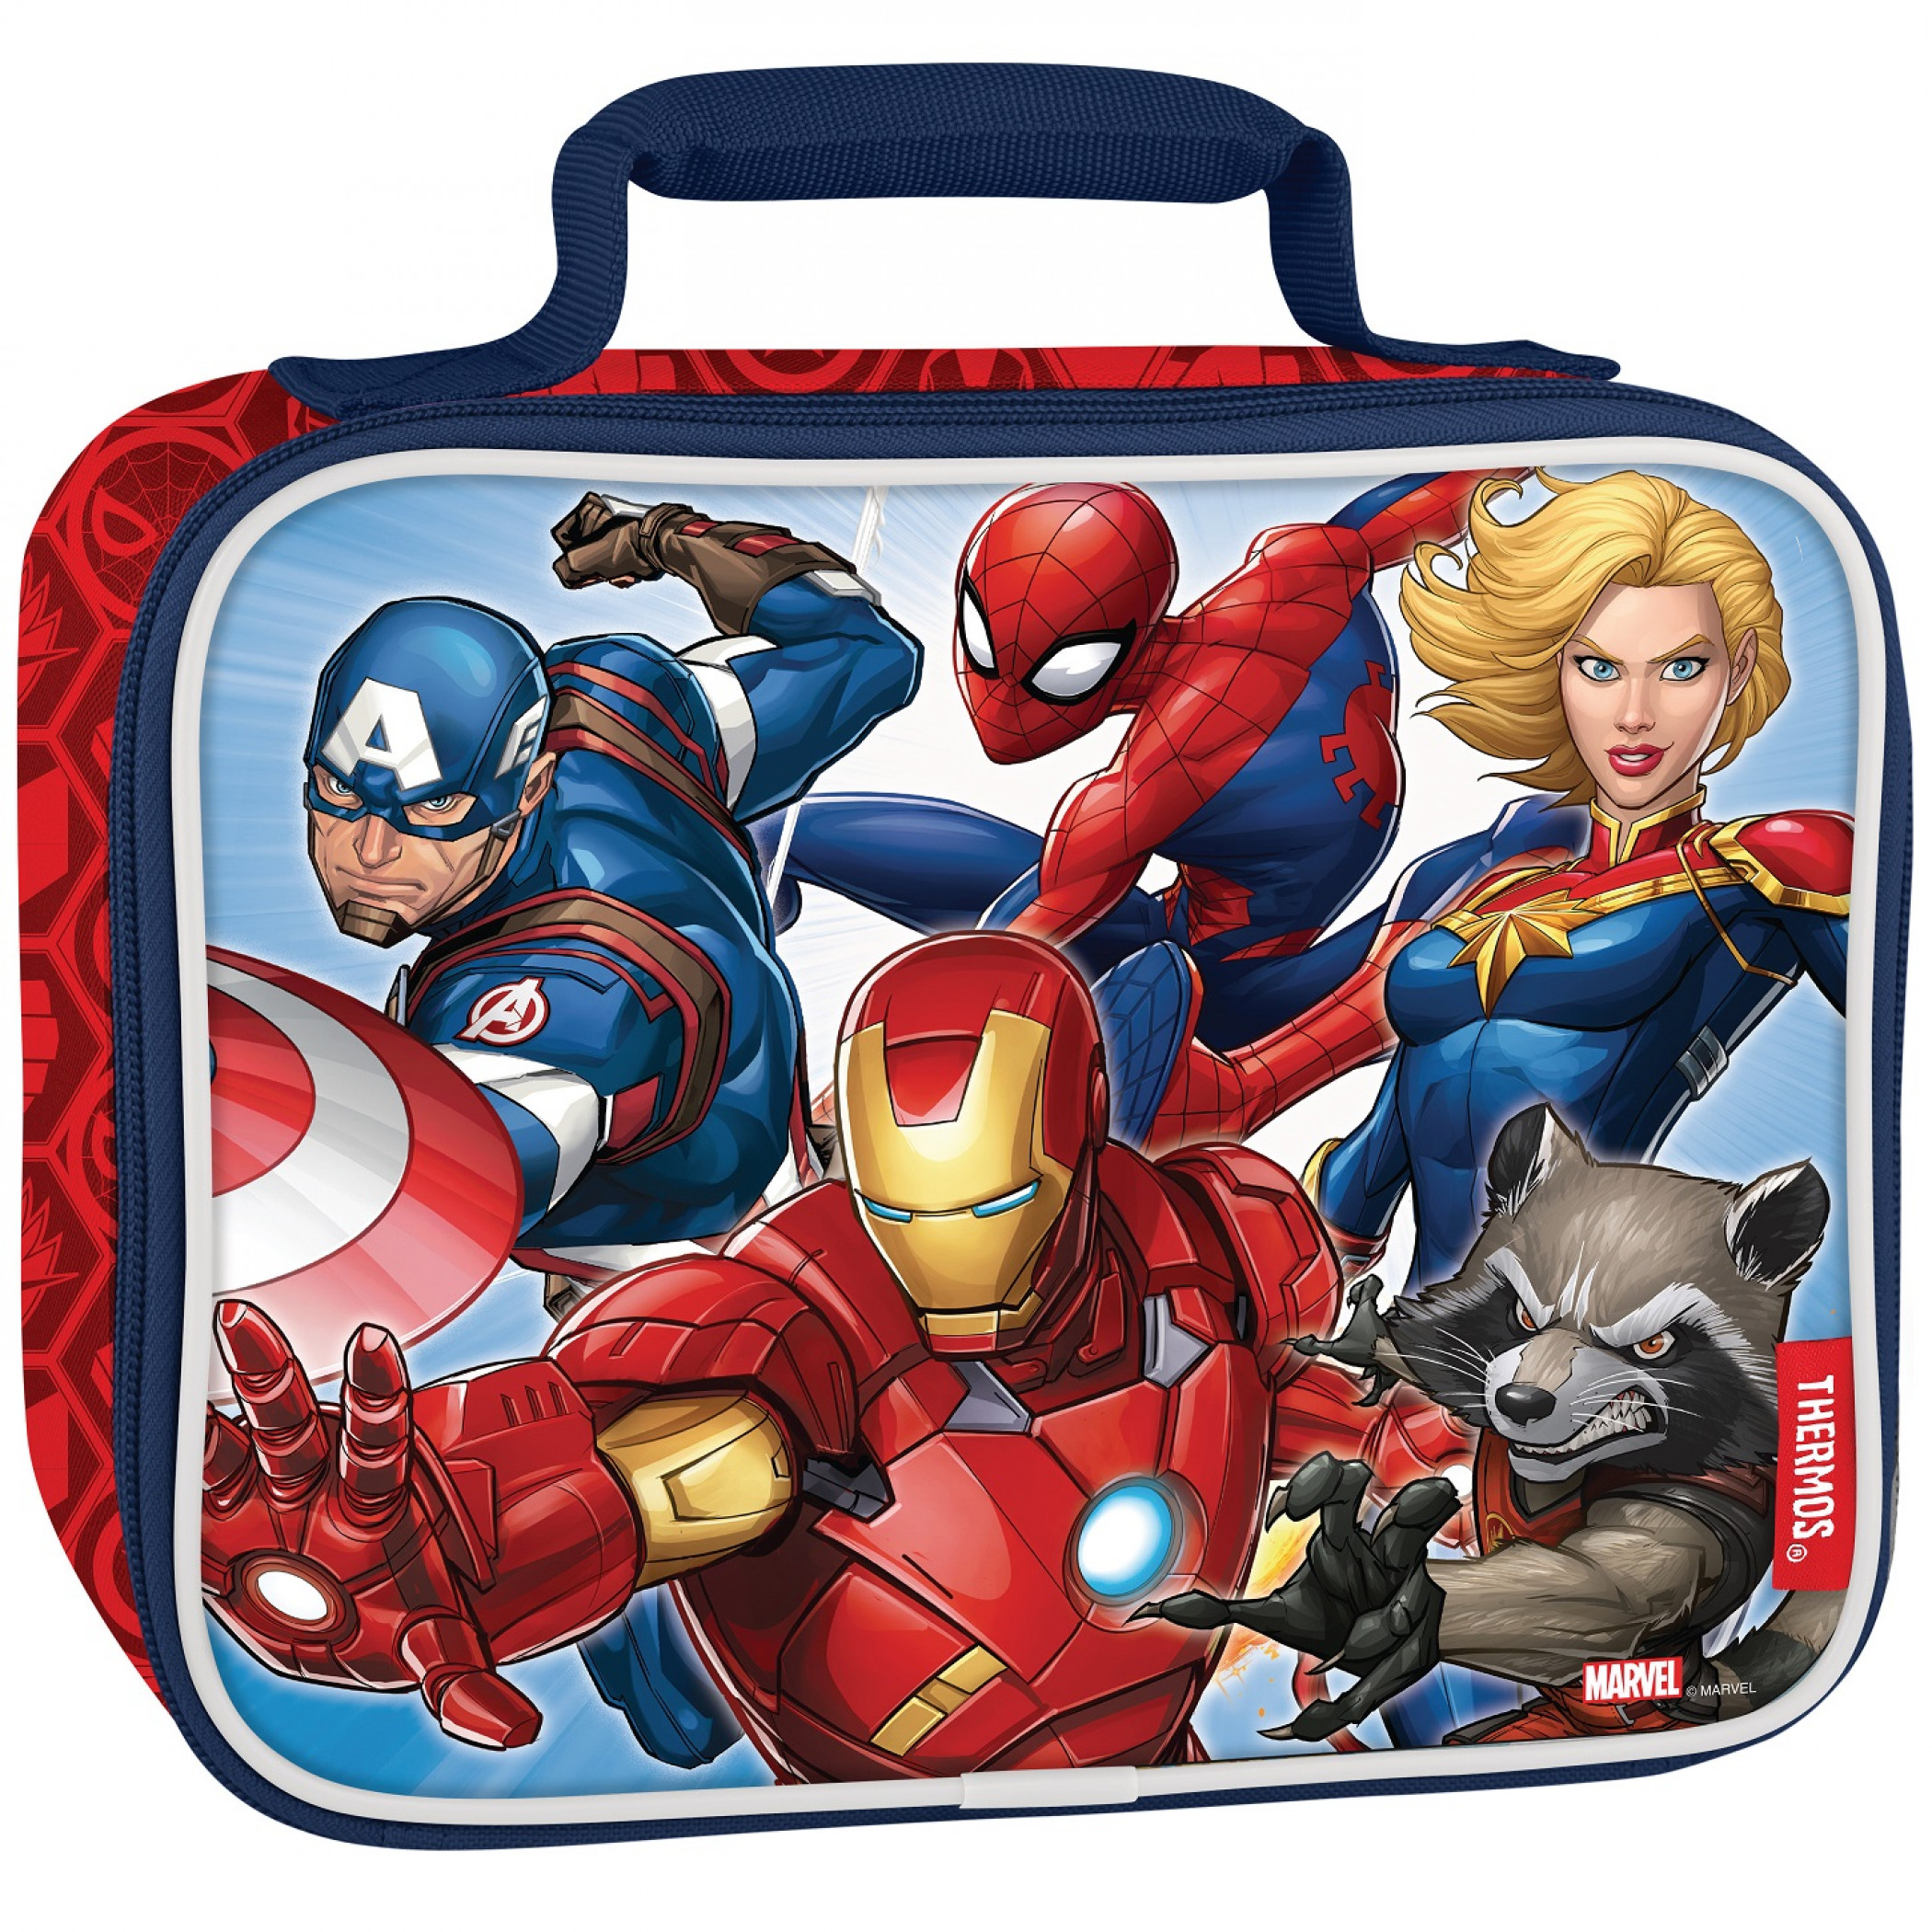 Marvel Avengers Thermos Insulated Lunch Box